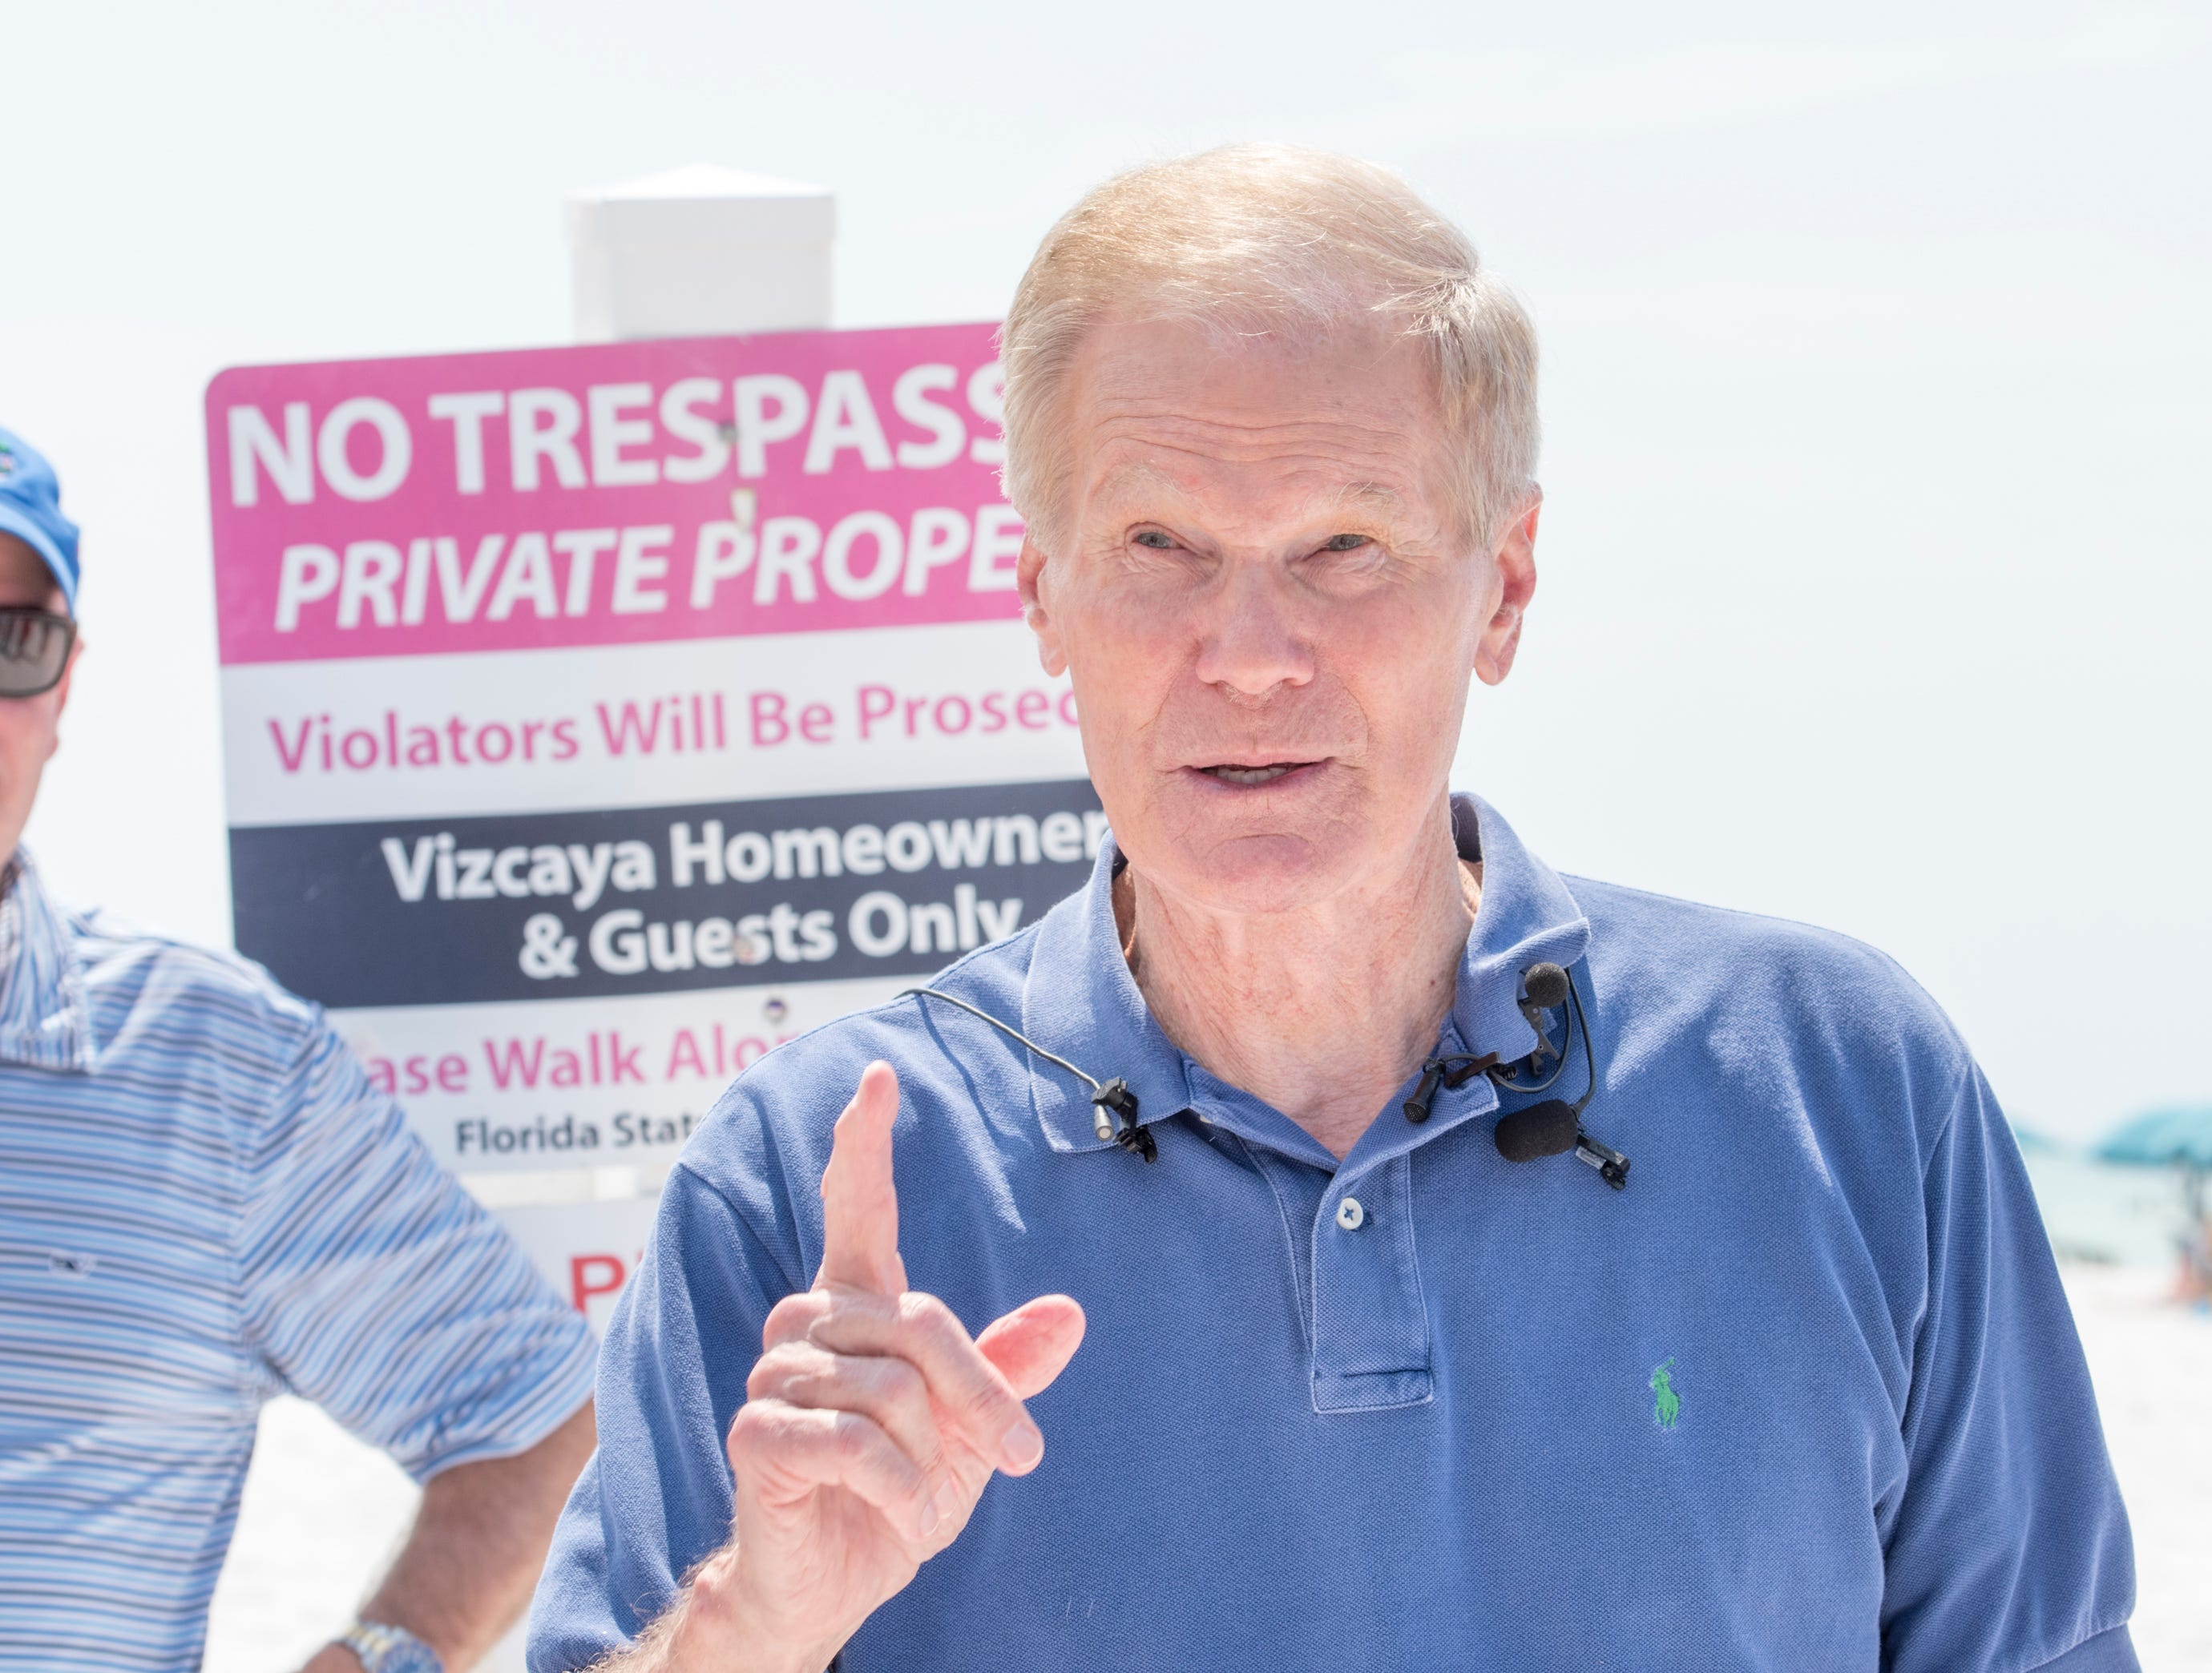 U.S. Sen. Bill Nelson calls for special legislation session on beach access issues